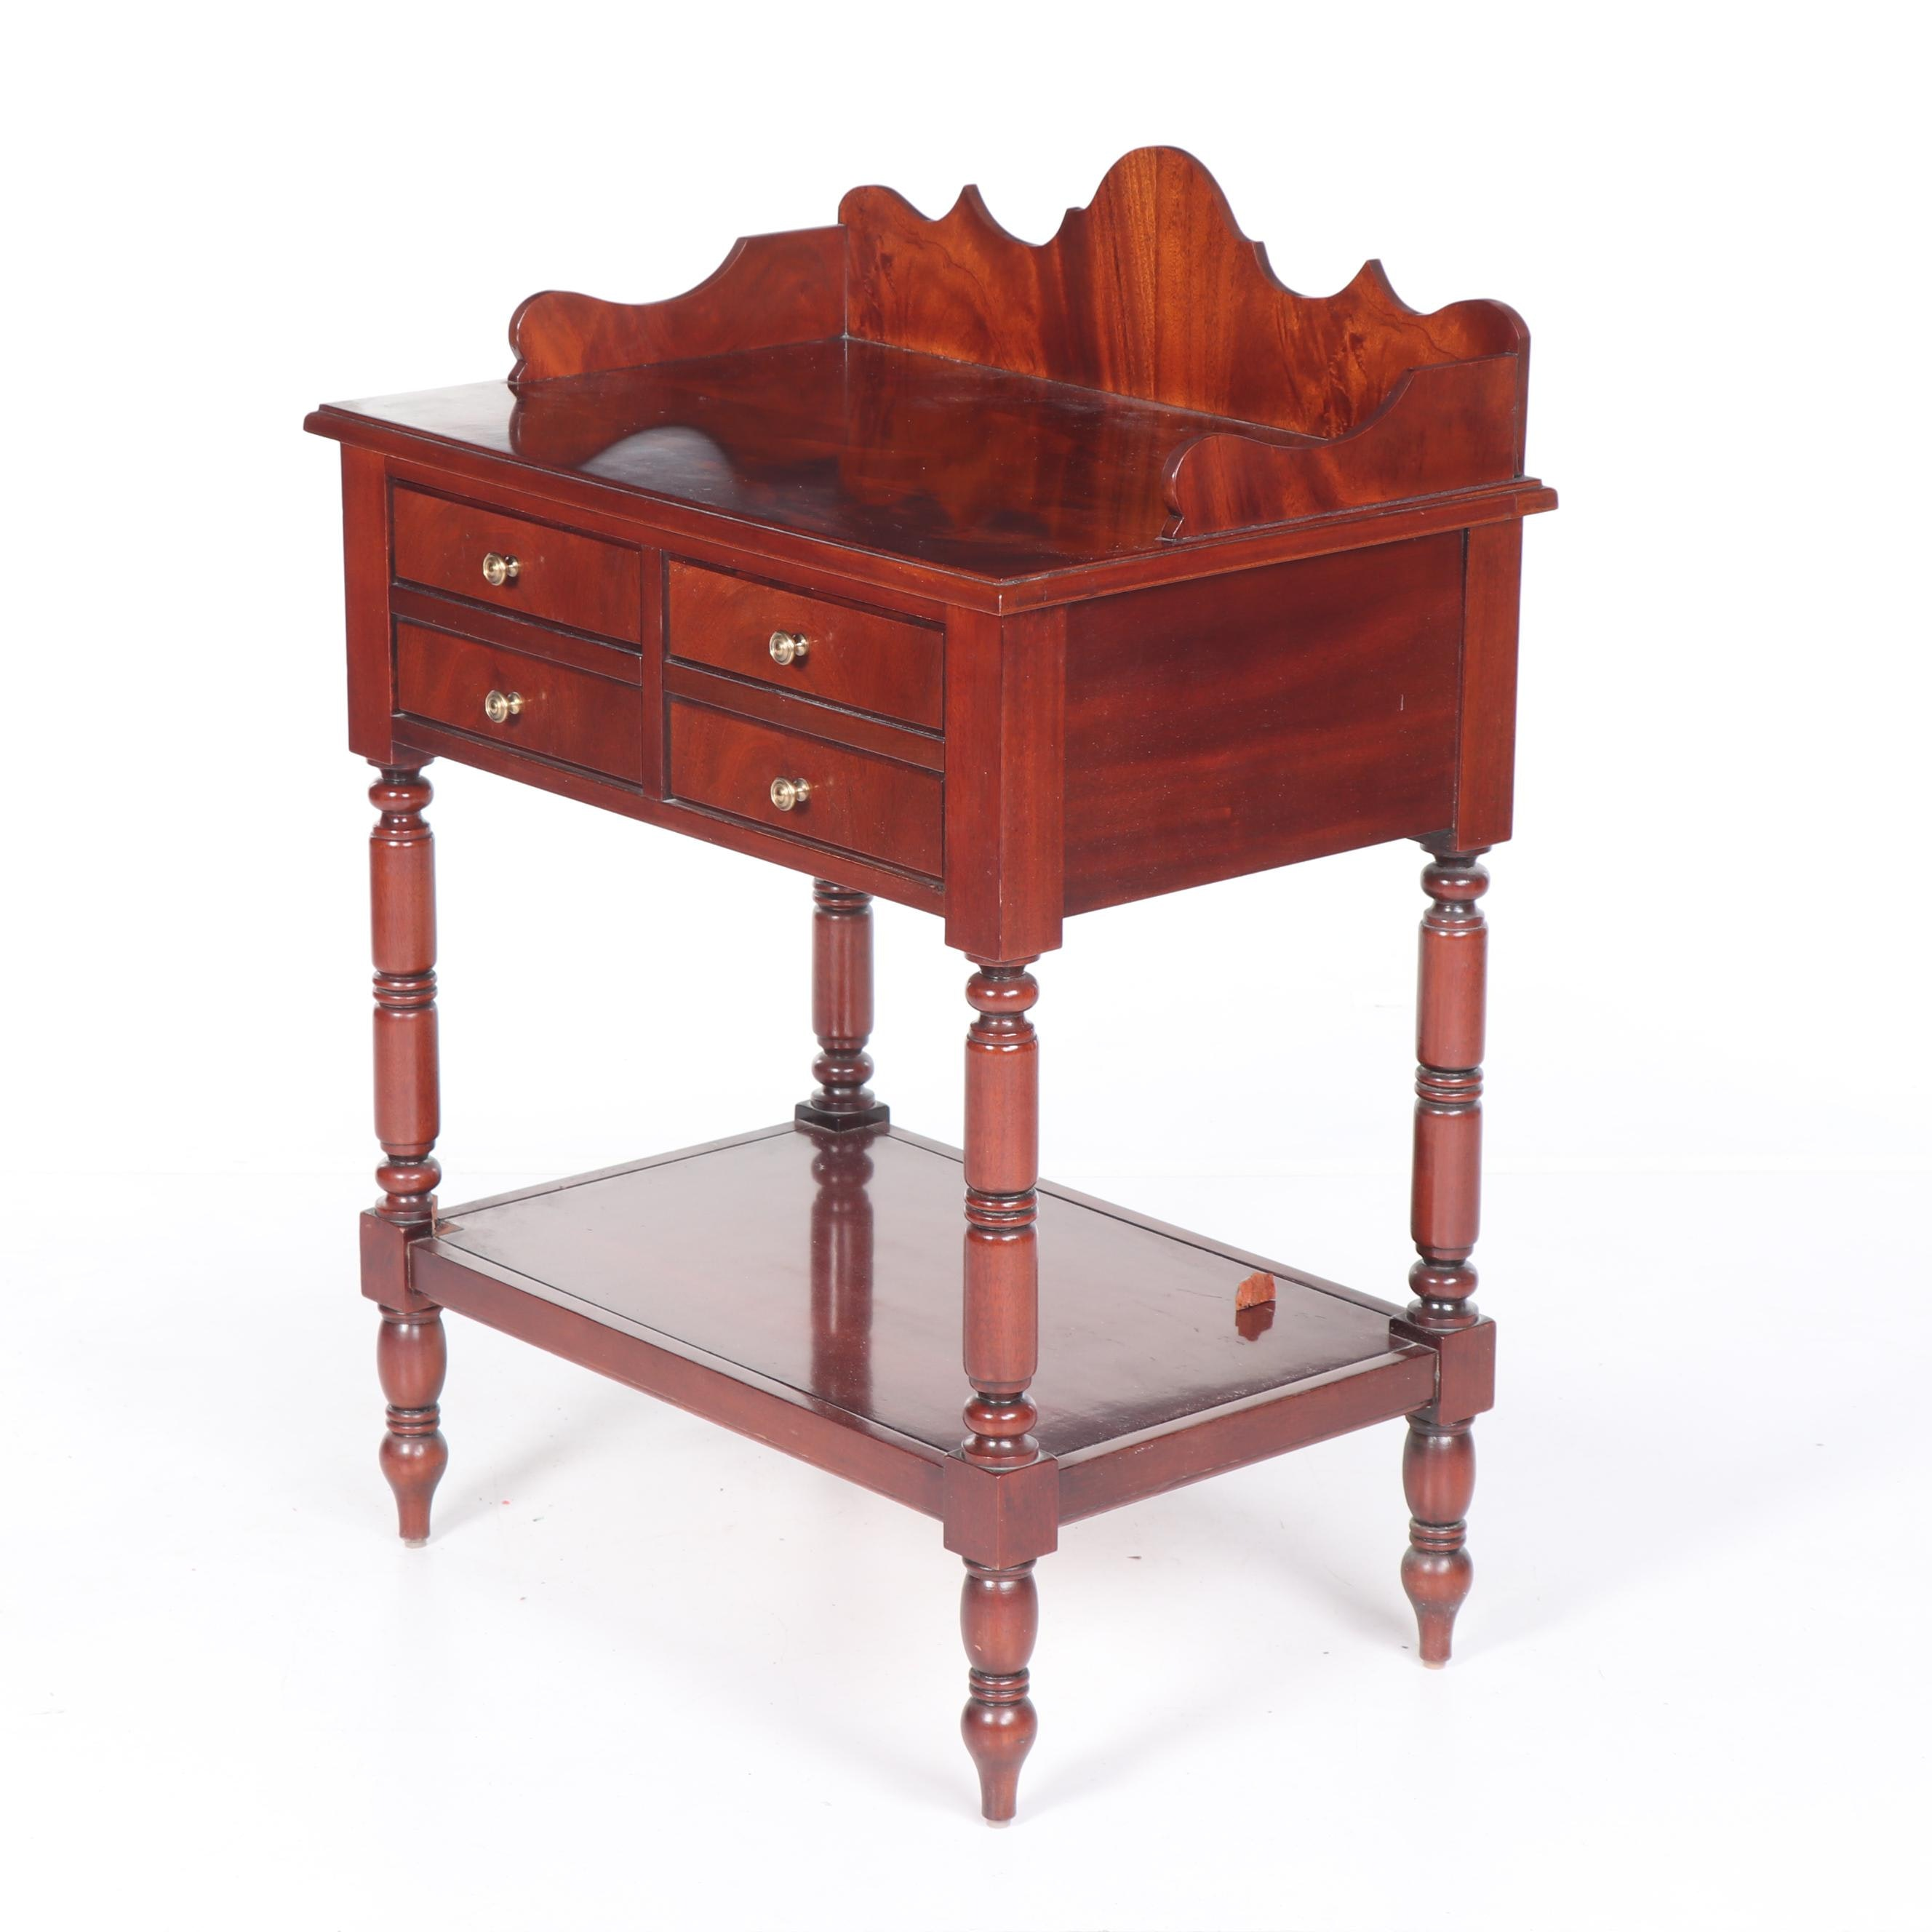 Federal Style Mahogany Side Table by Hickory Chair, 21st Century